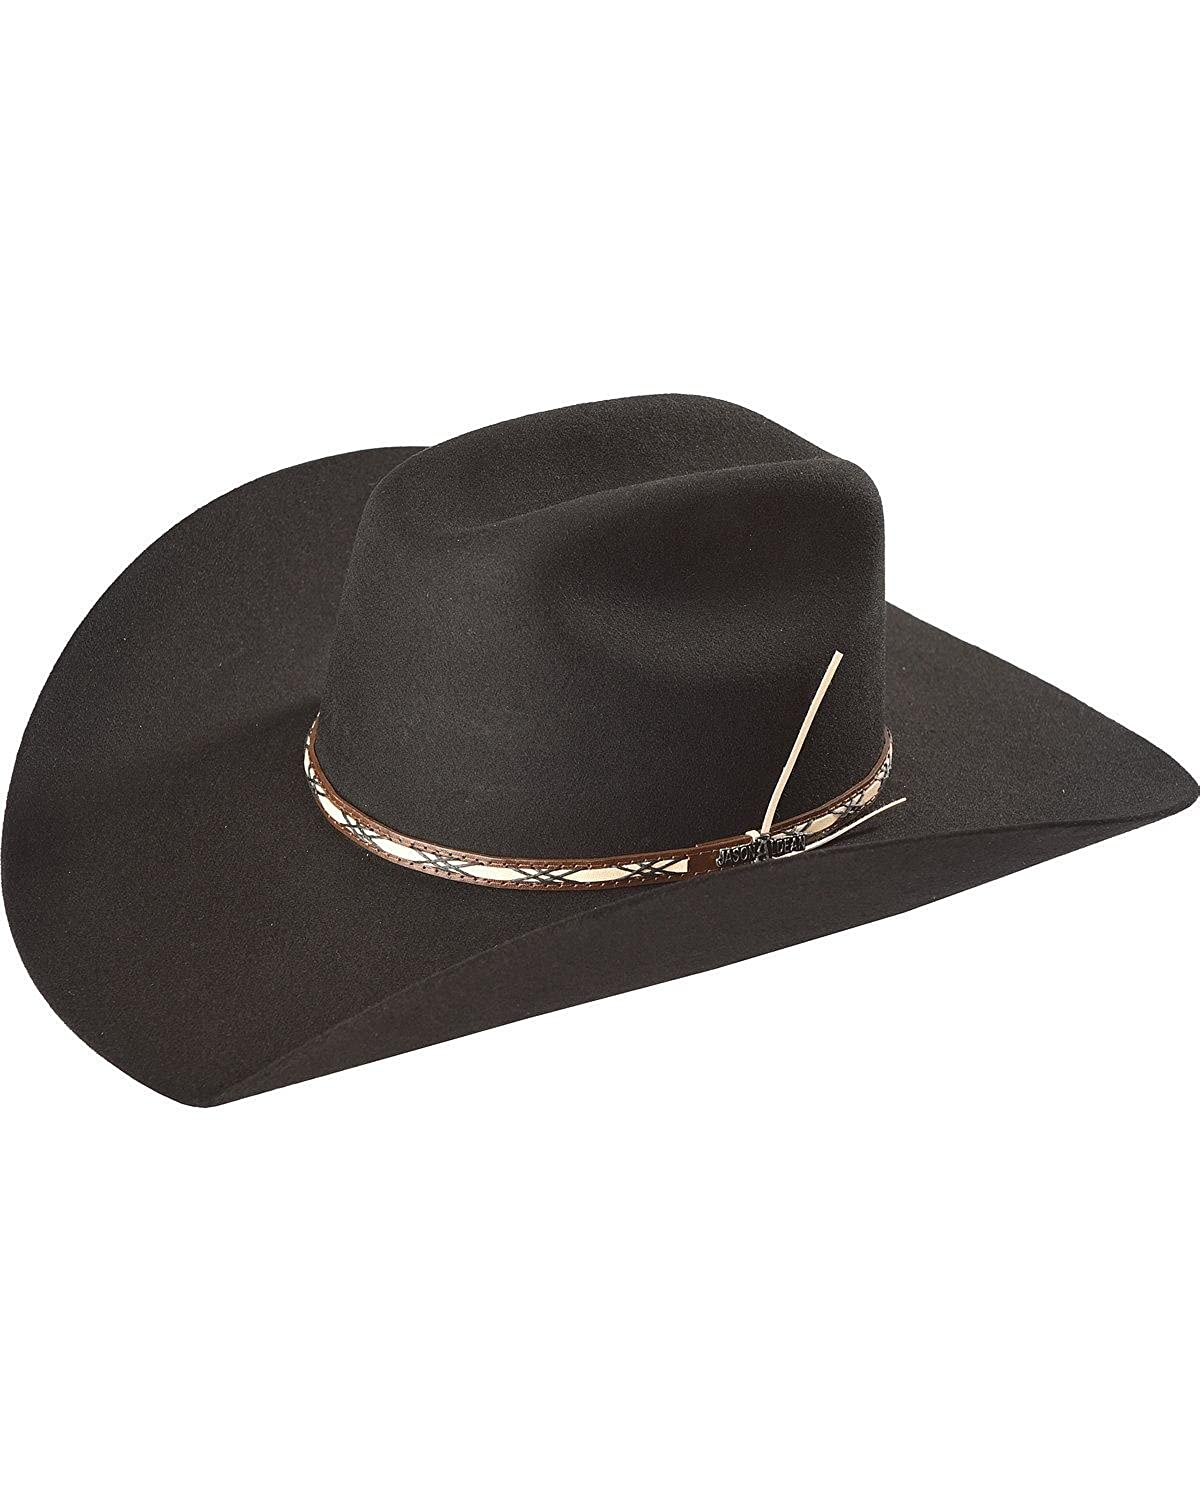 Jason Aldean Men s Amarillo Sky Felt Cowboy Hat - Rwamsk-304107 at Amazon  Men s Clothing store  014077dde66